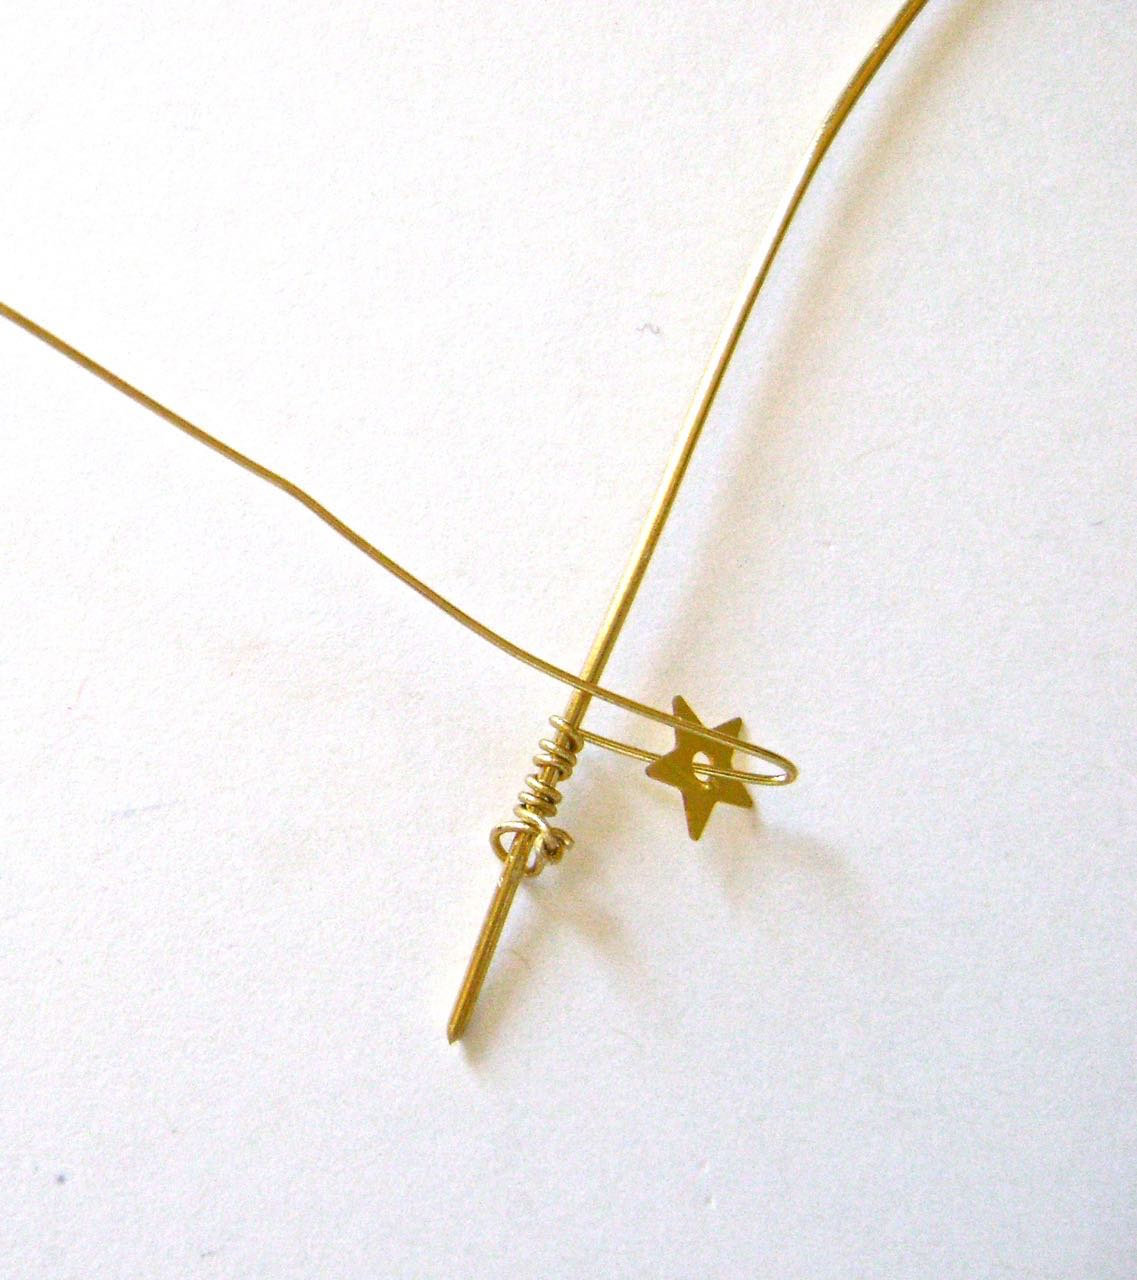 """step 5 - Cut a piece of 18 gauge wire to 6"""" long. I'll call this the core wire. Cut a piece of 26 gauge wire to 24"""" long. Wrap the thinner wire around the core wire seven times. Make a bend in the wire at about 3/8"""" from the core wire. Slide a star into the bend."""